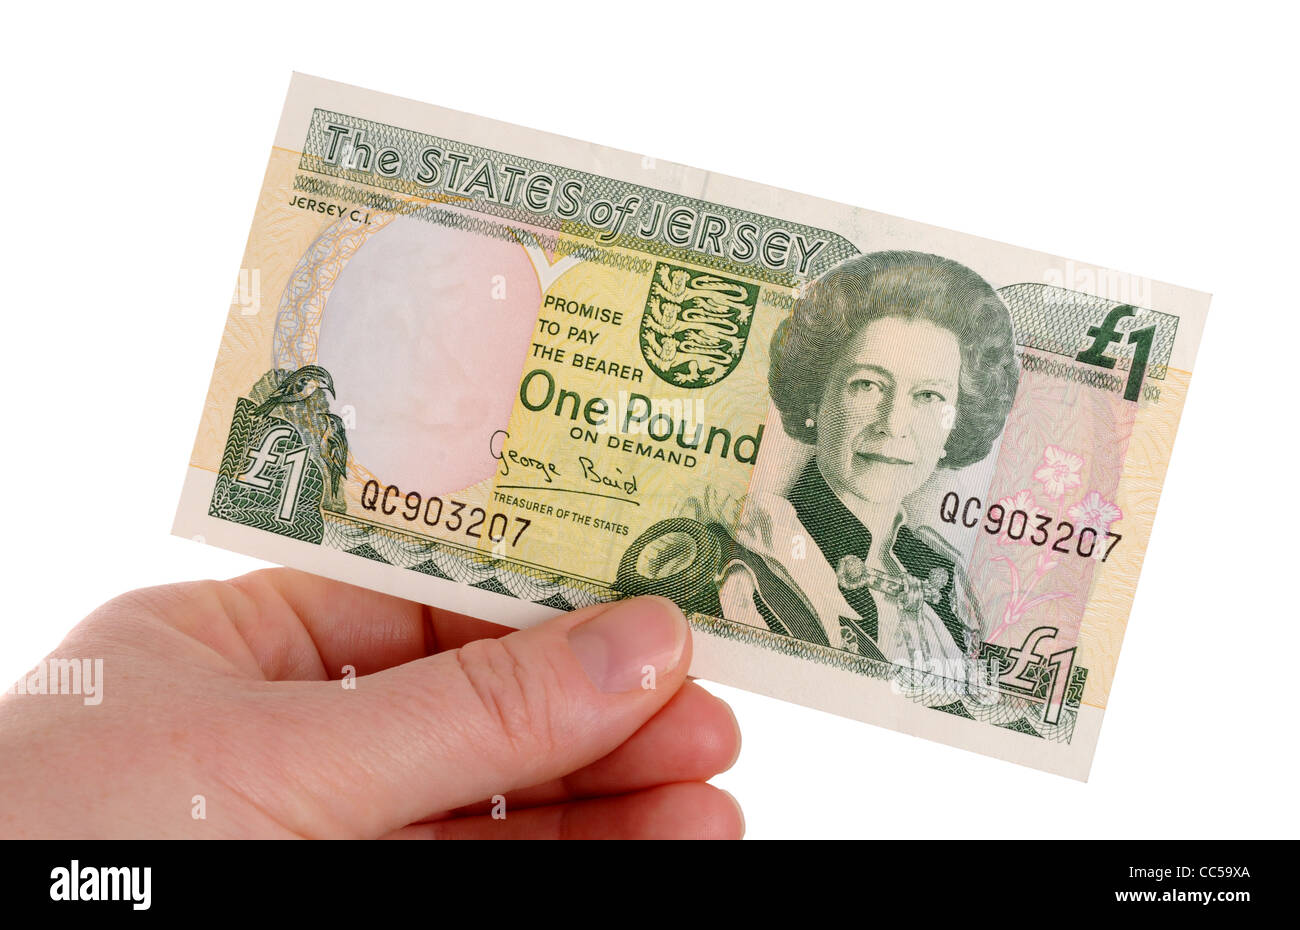 jersey one pound note on a white background stock photo 41914162